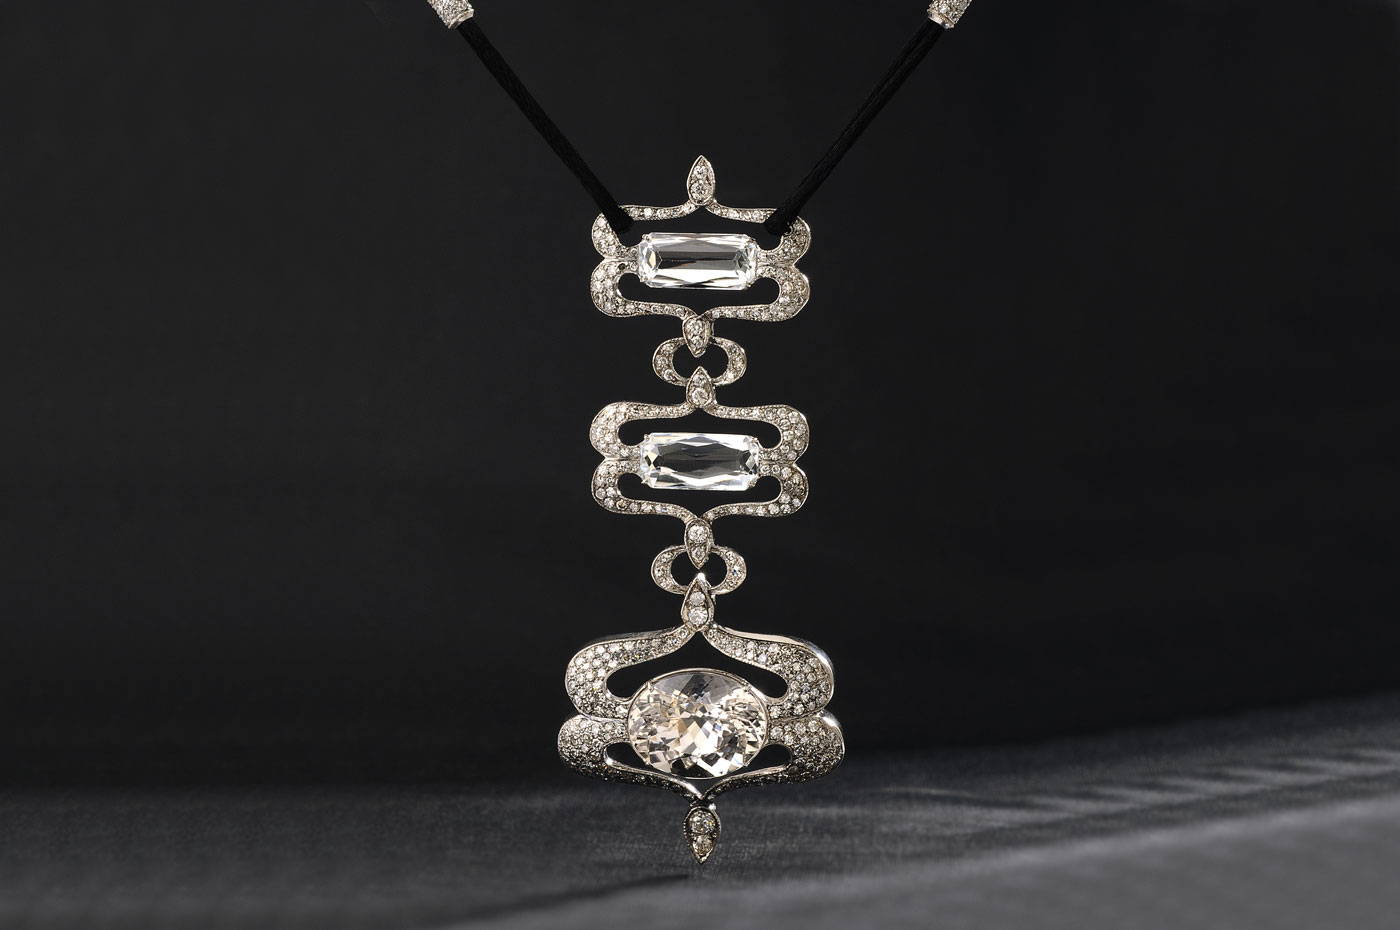 Image of the Empress Diamond Necklace at The Chicago Field Museum